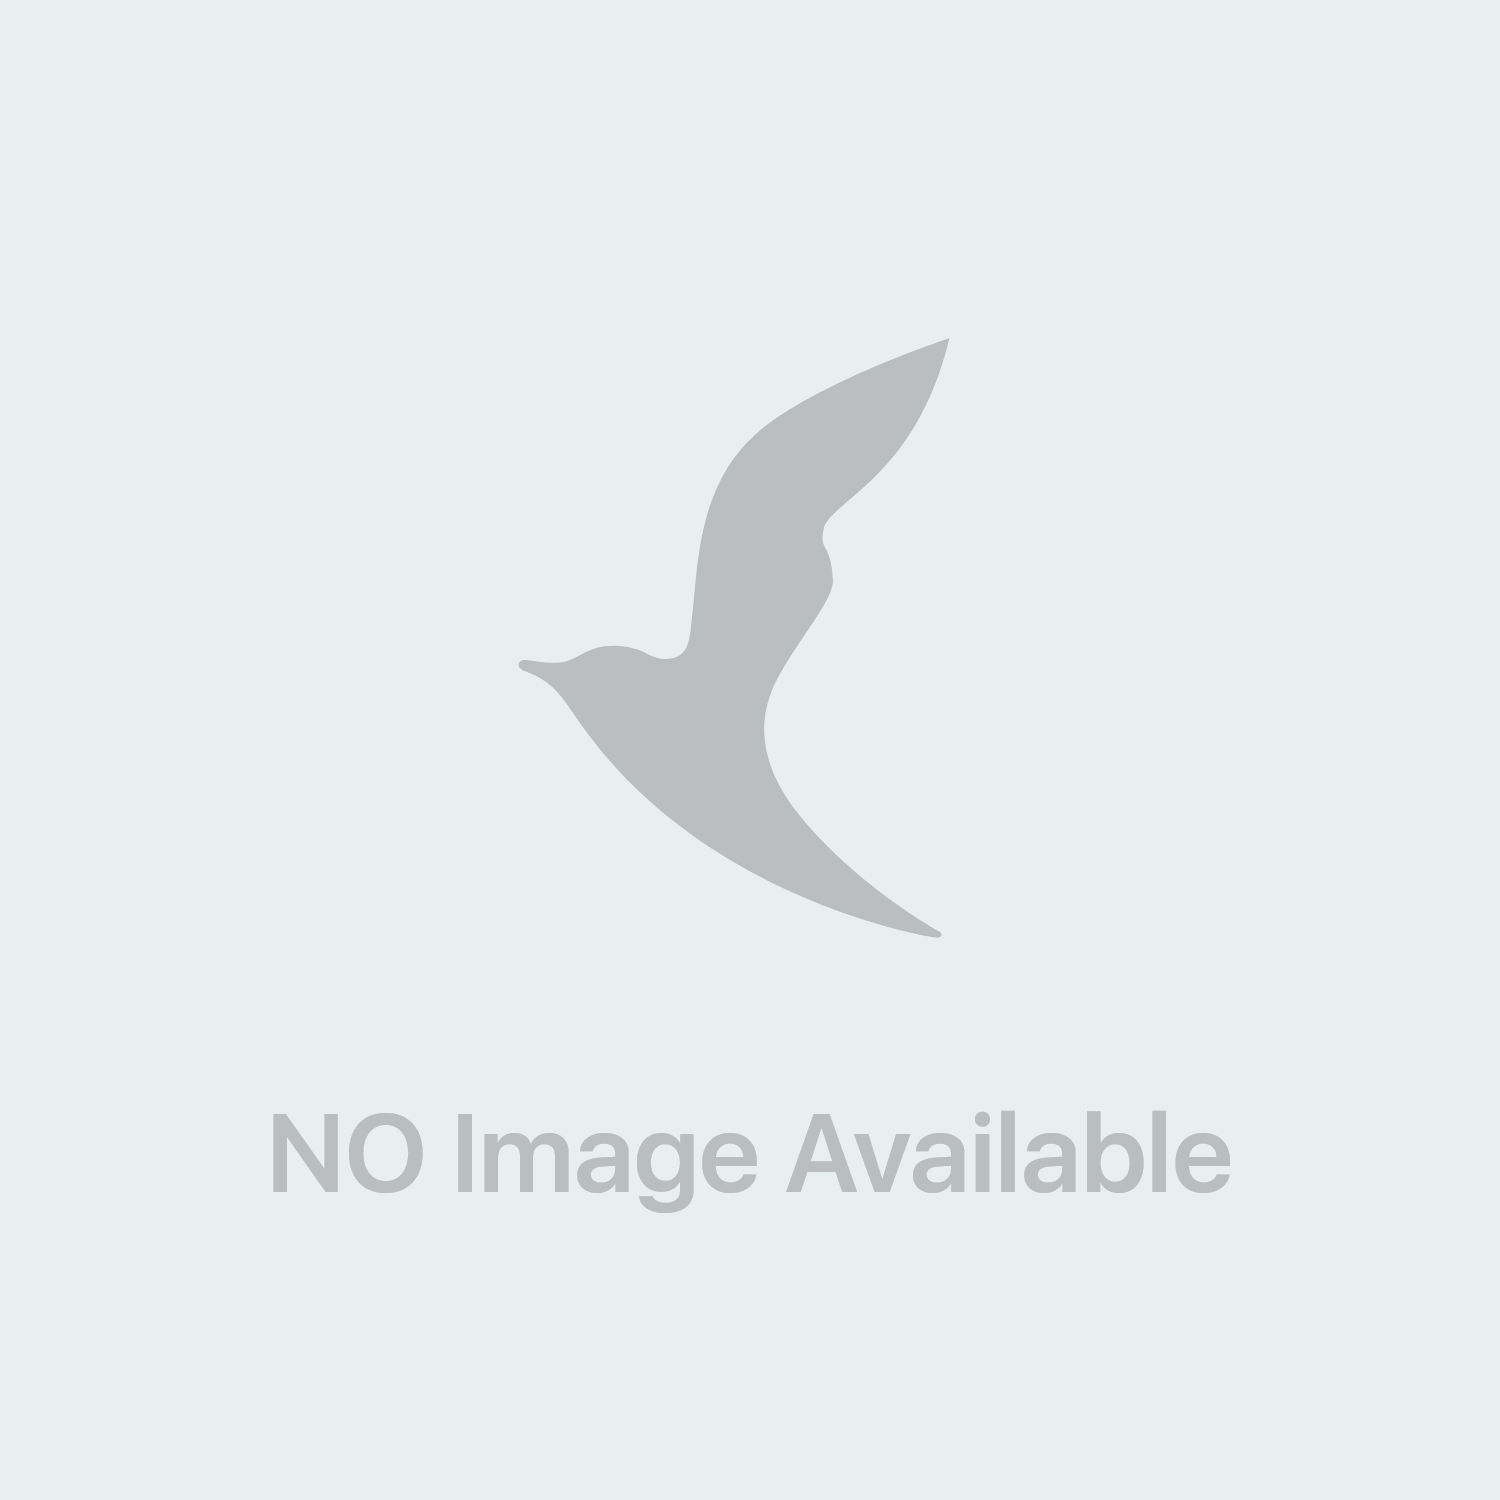 Uriage Isodense Sèrum Anti Rughe Effetto Intensivo 30 Ml